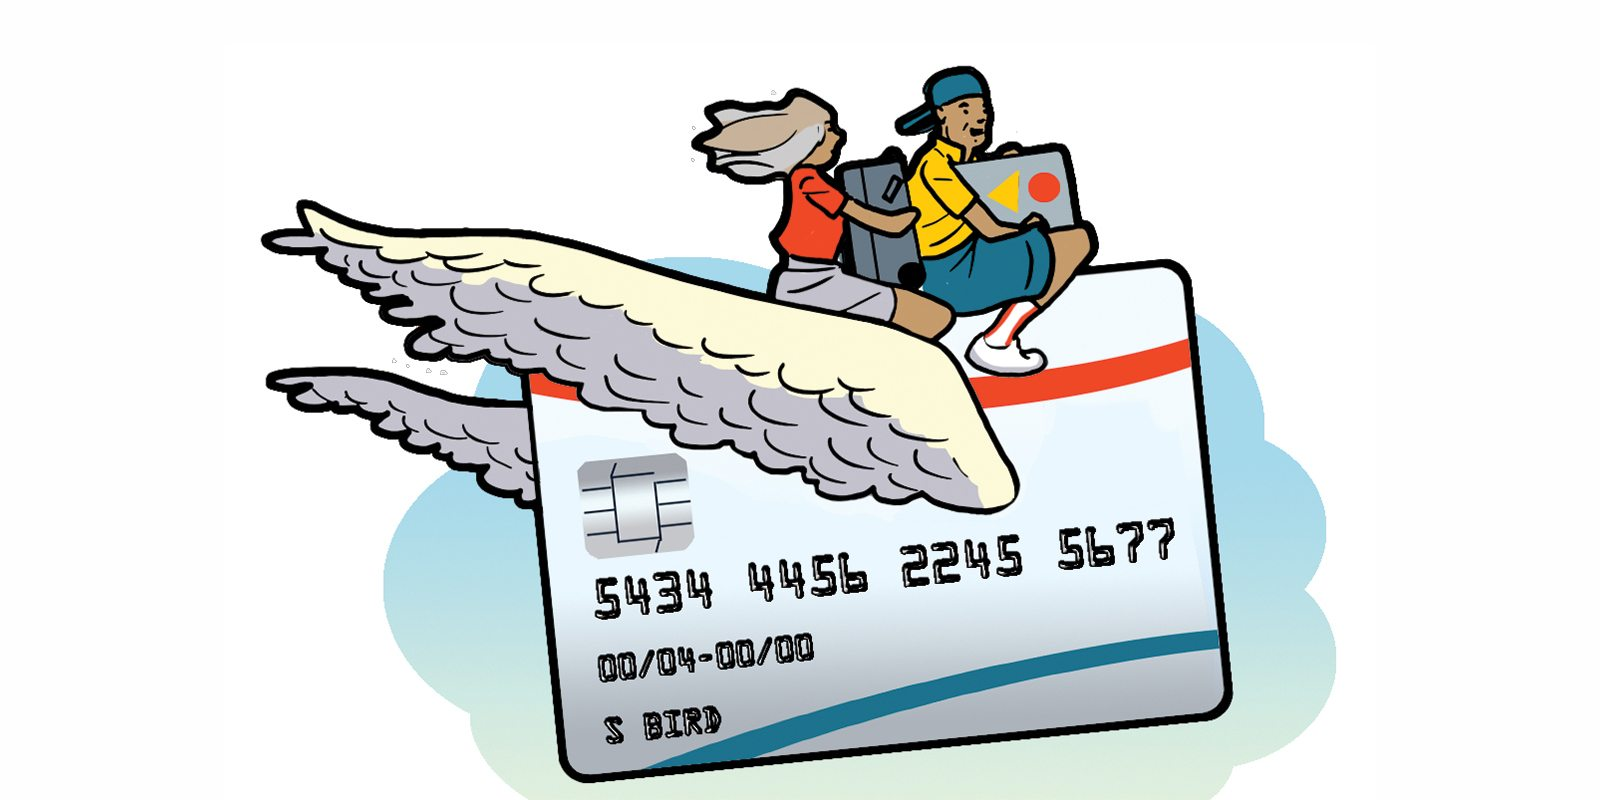 Should I Use My Credit Card While Travelling Abroad